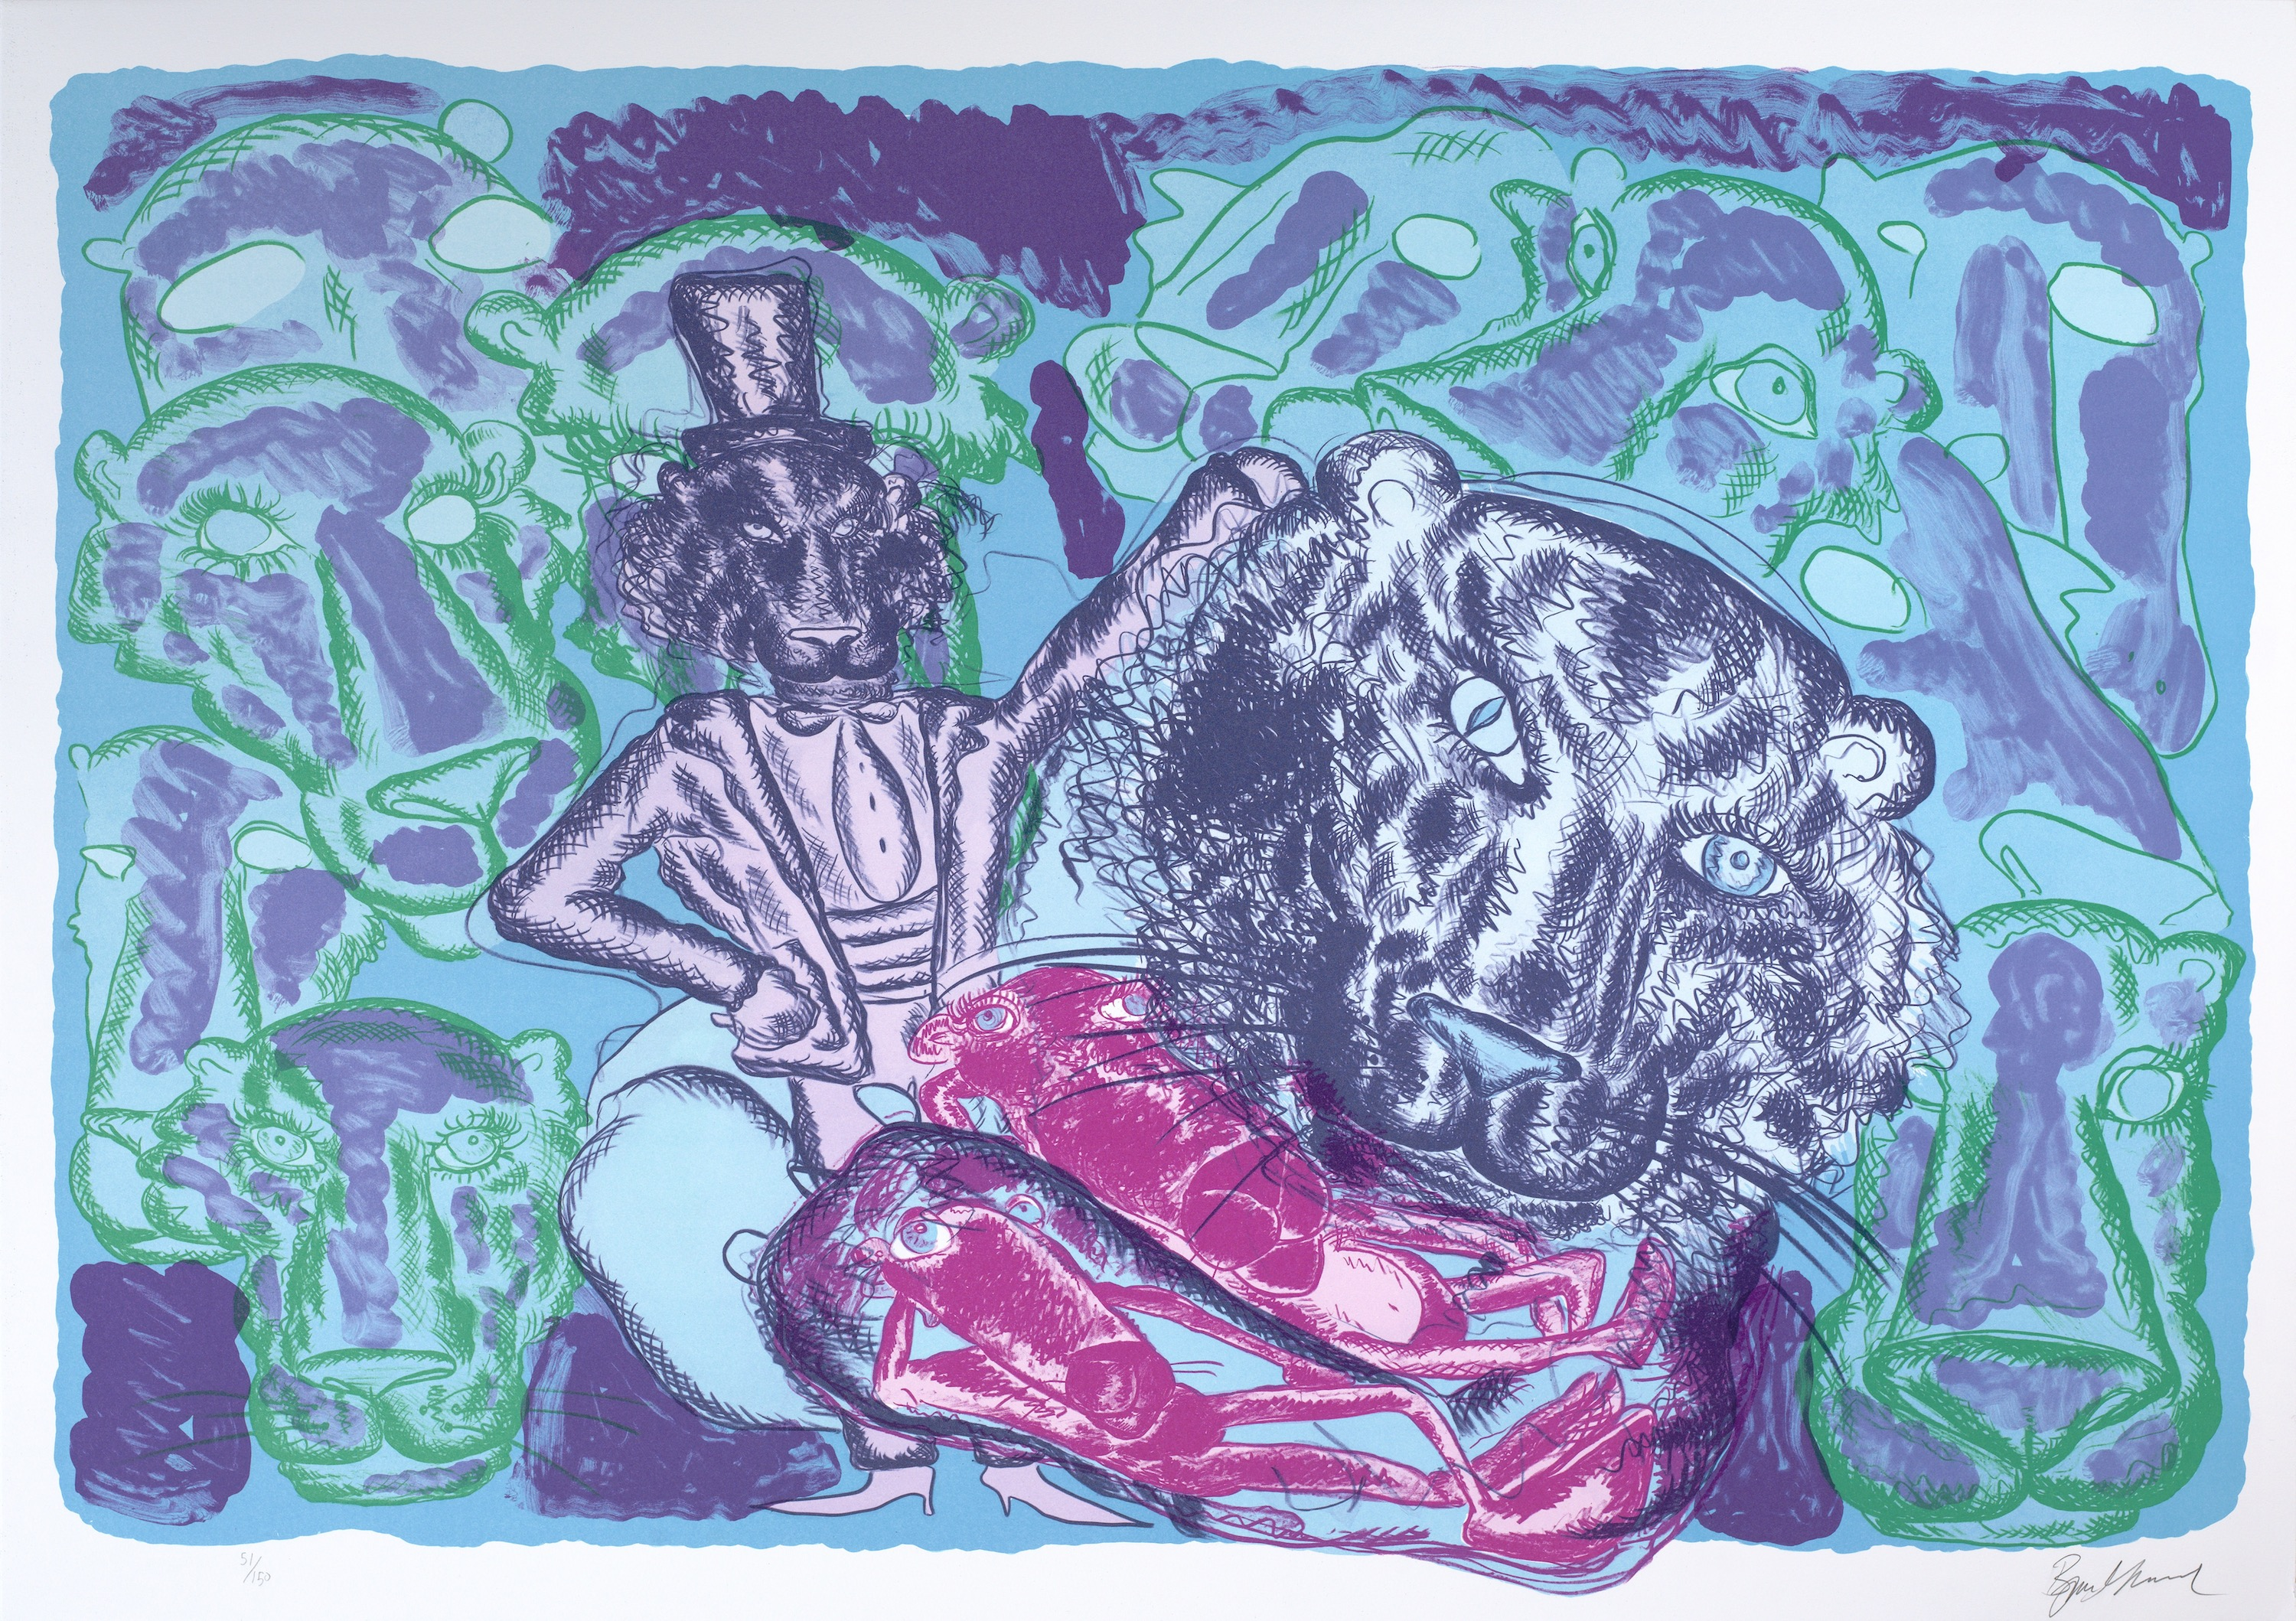 Visual Artwork: Untitled 5 by artist and creator Bjarne Melgaard